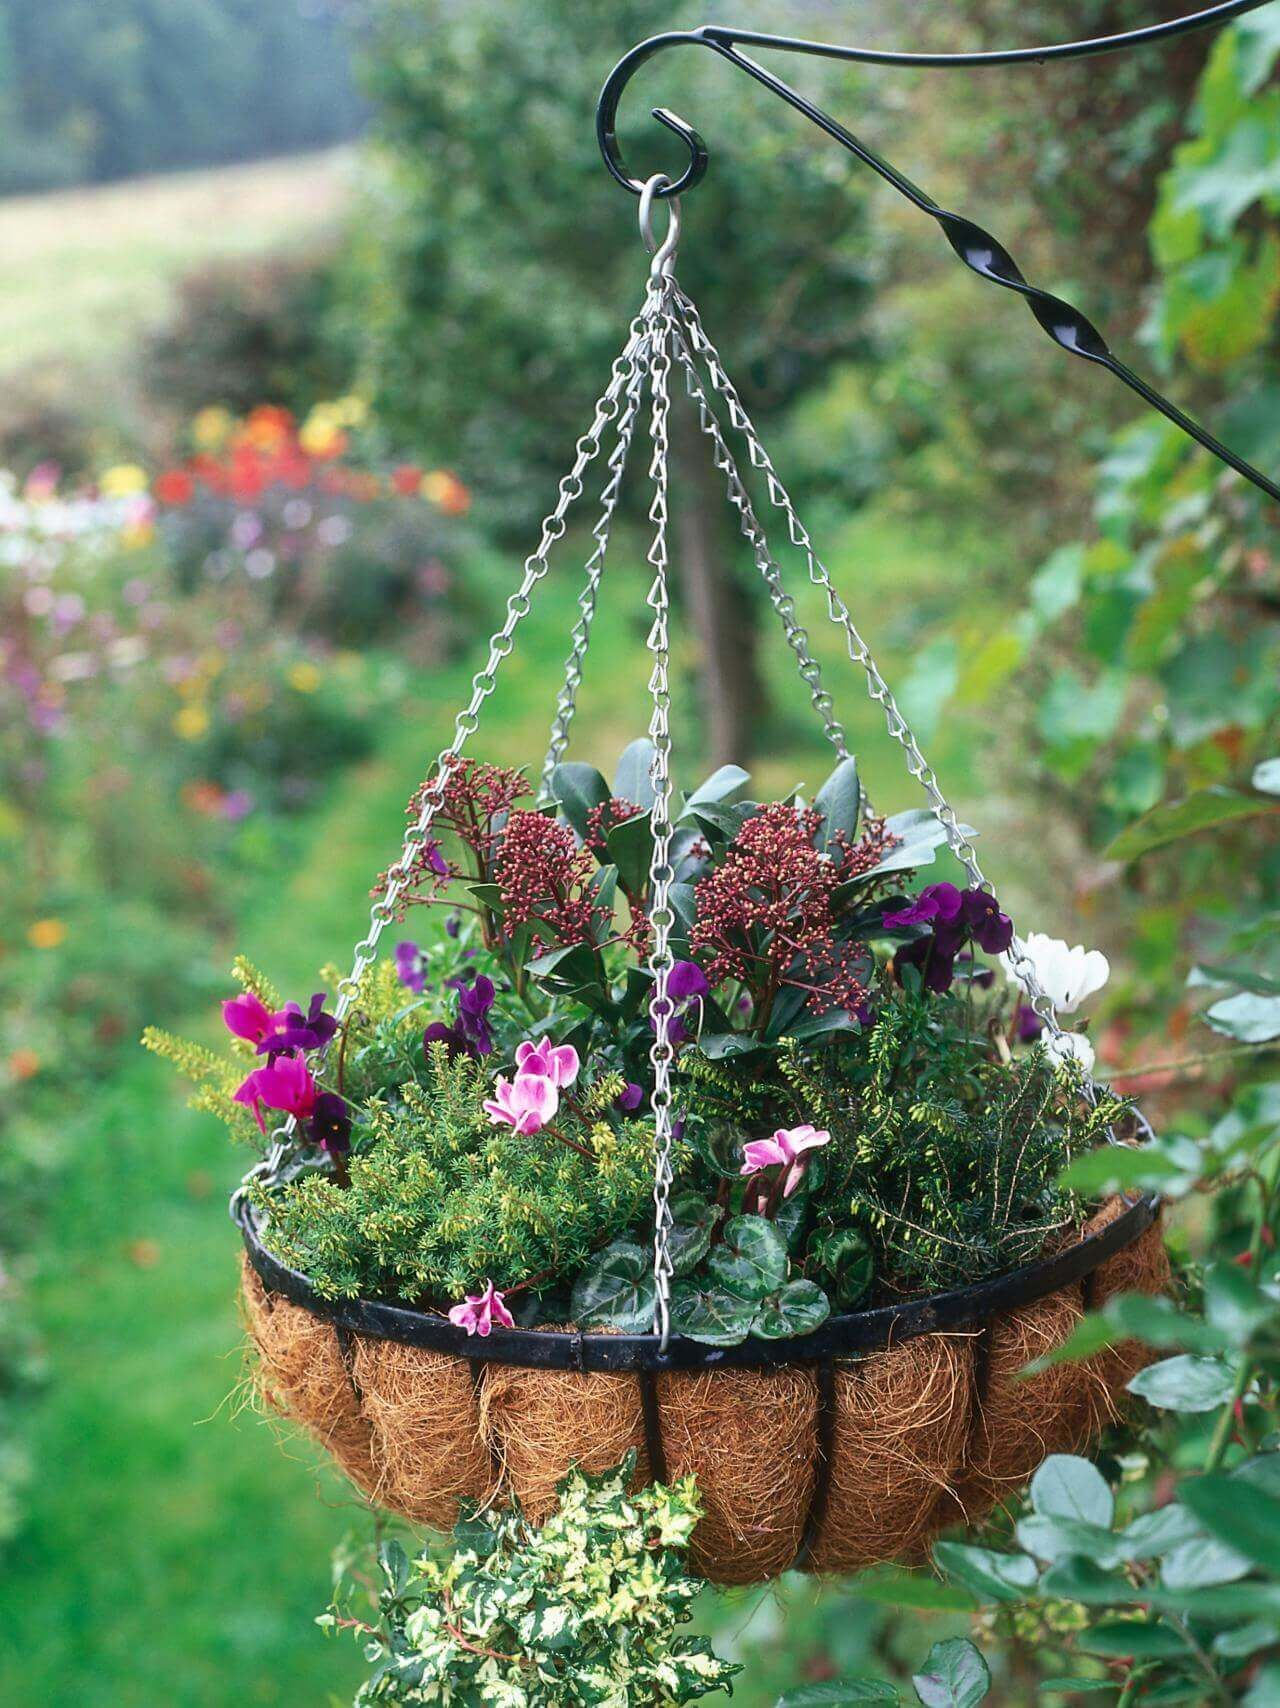 45 charming outdoor hanging planter ideas to brighten your yard rh pinterest com outdoor hanging plants guide outdoor hanging planters and baskets